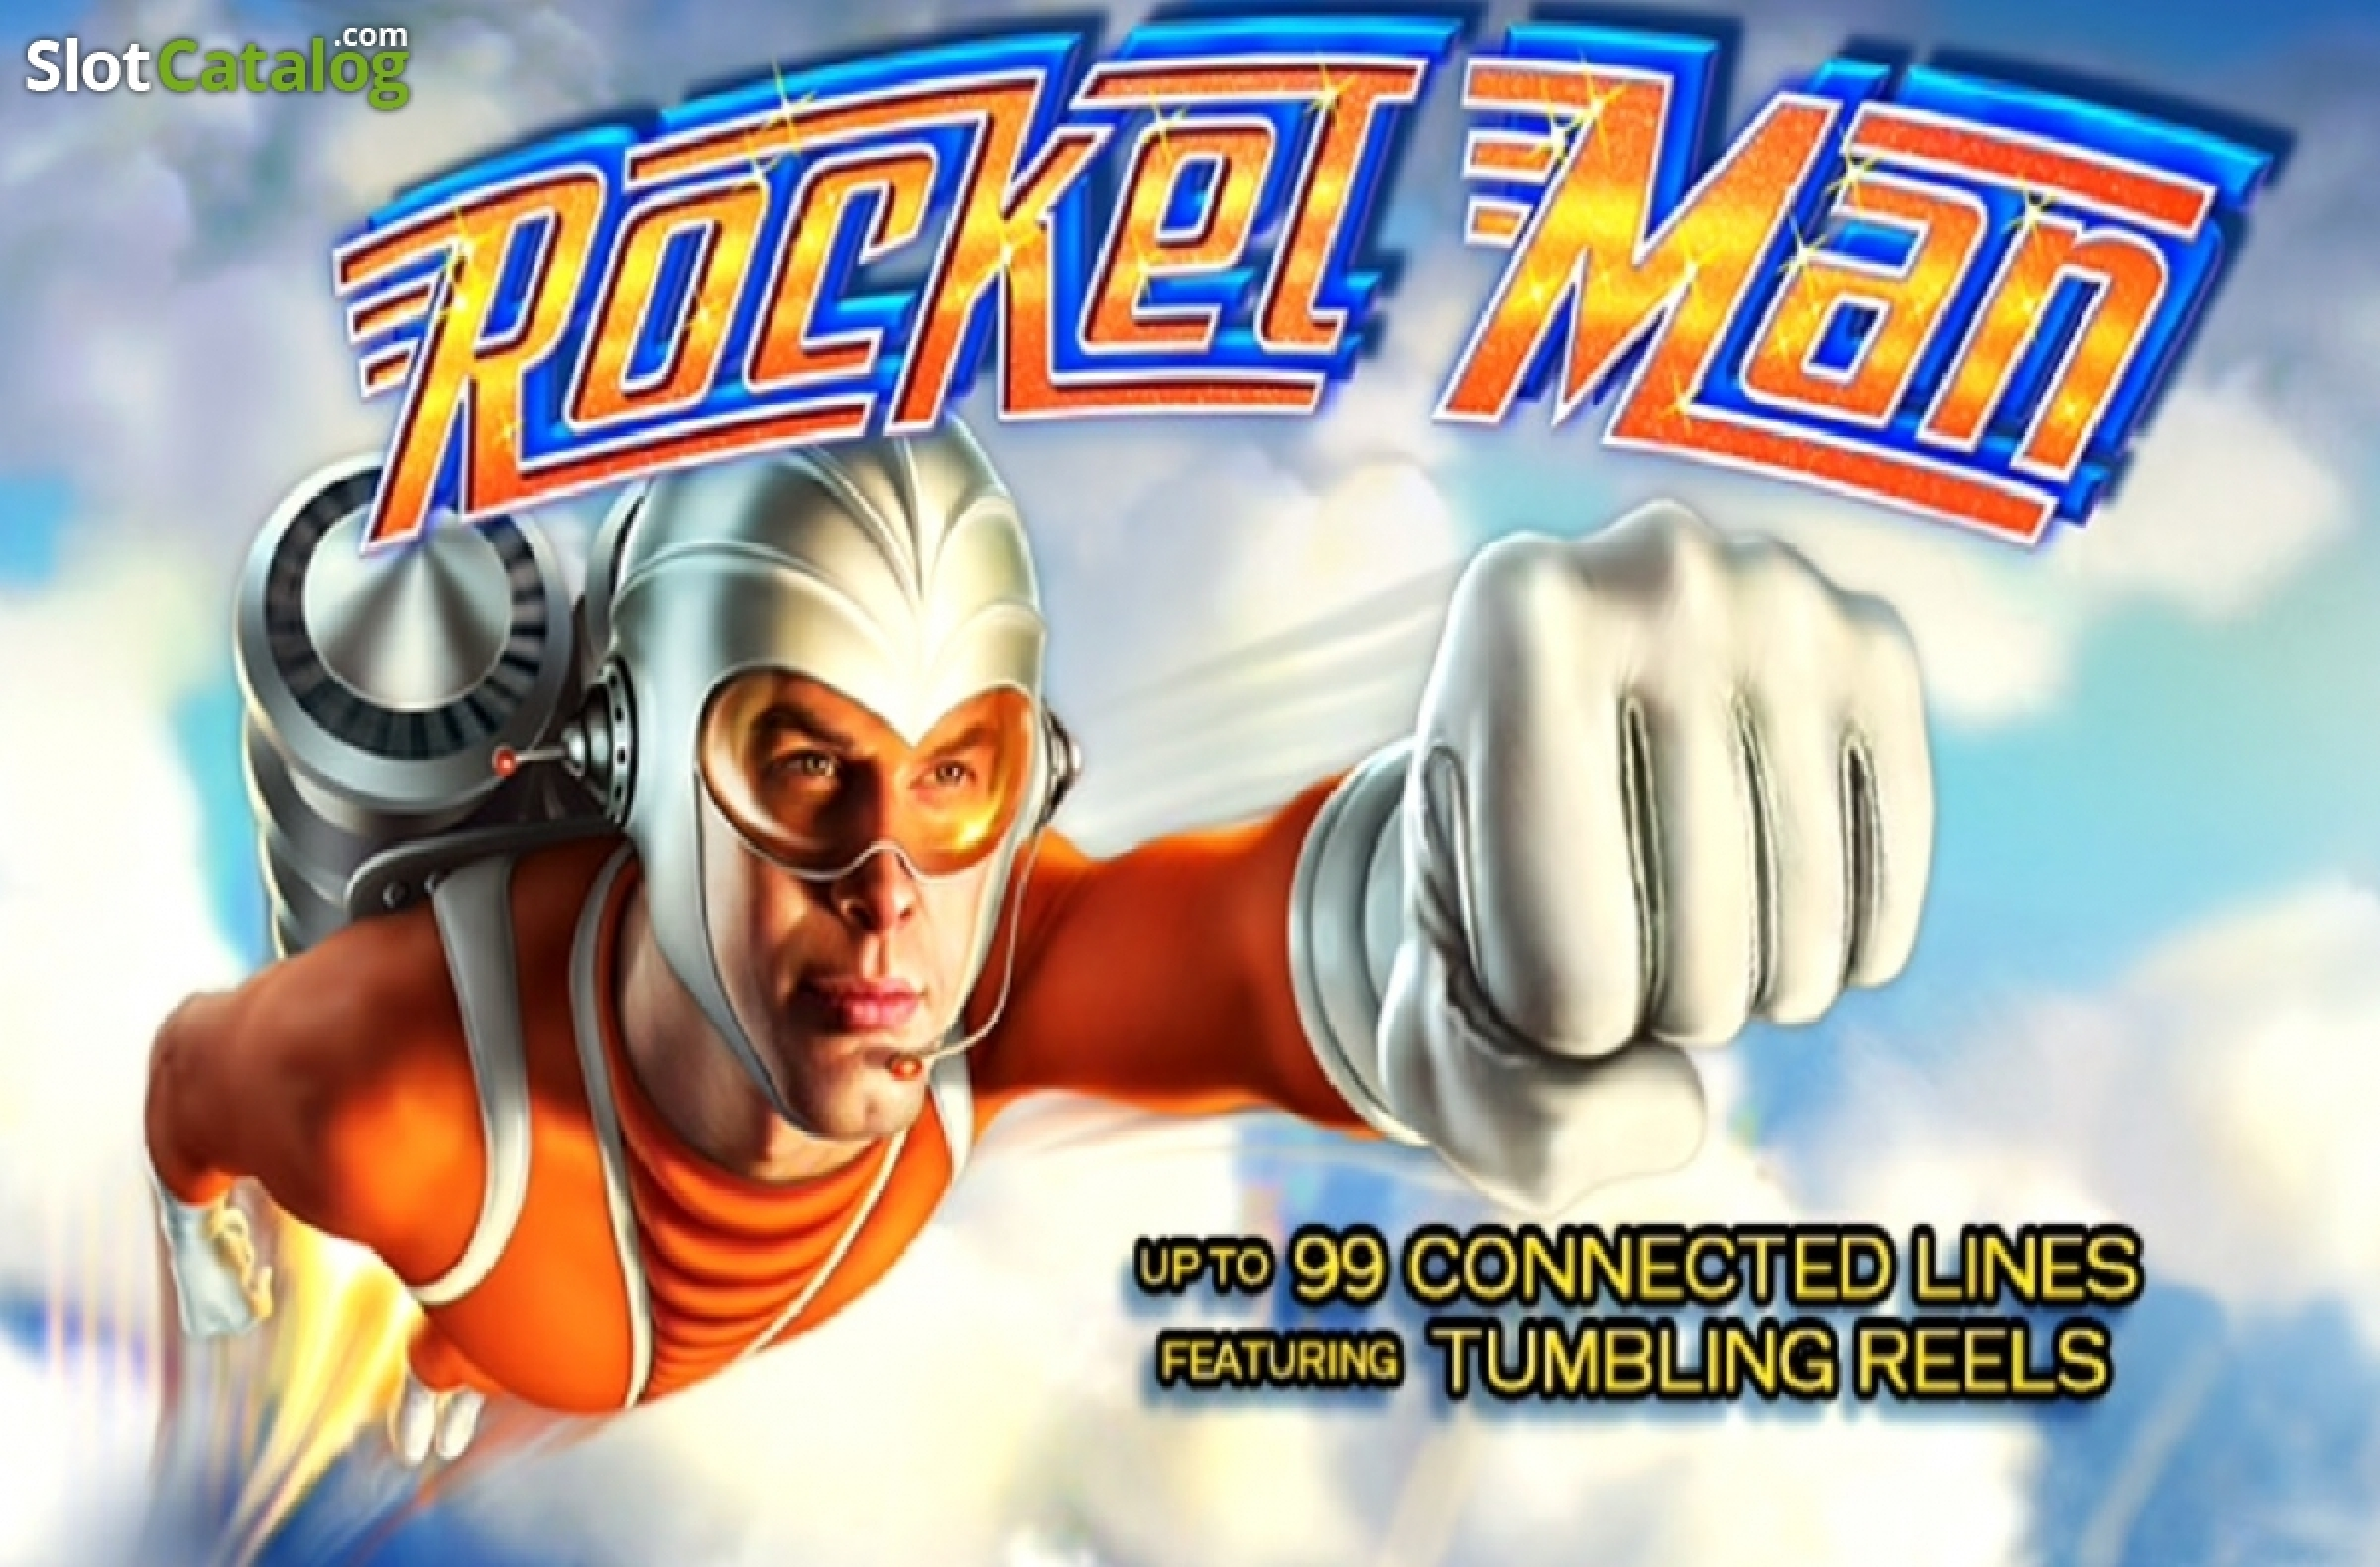 The Rocket Man (High 5 Games) Online Slot Demo Game by High 5 Games